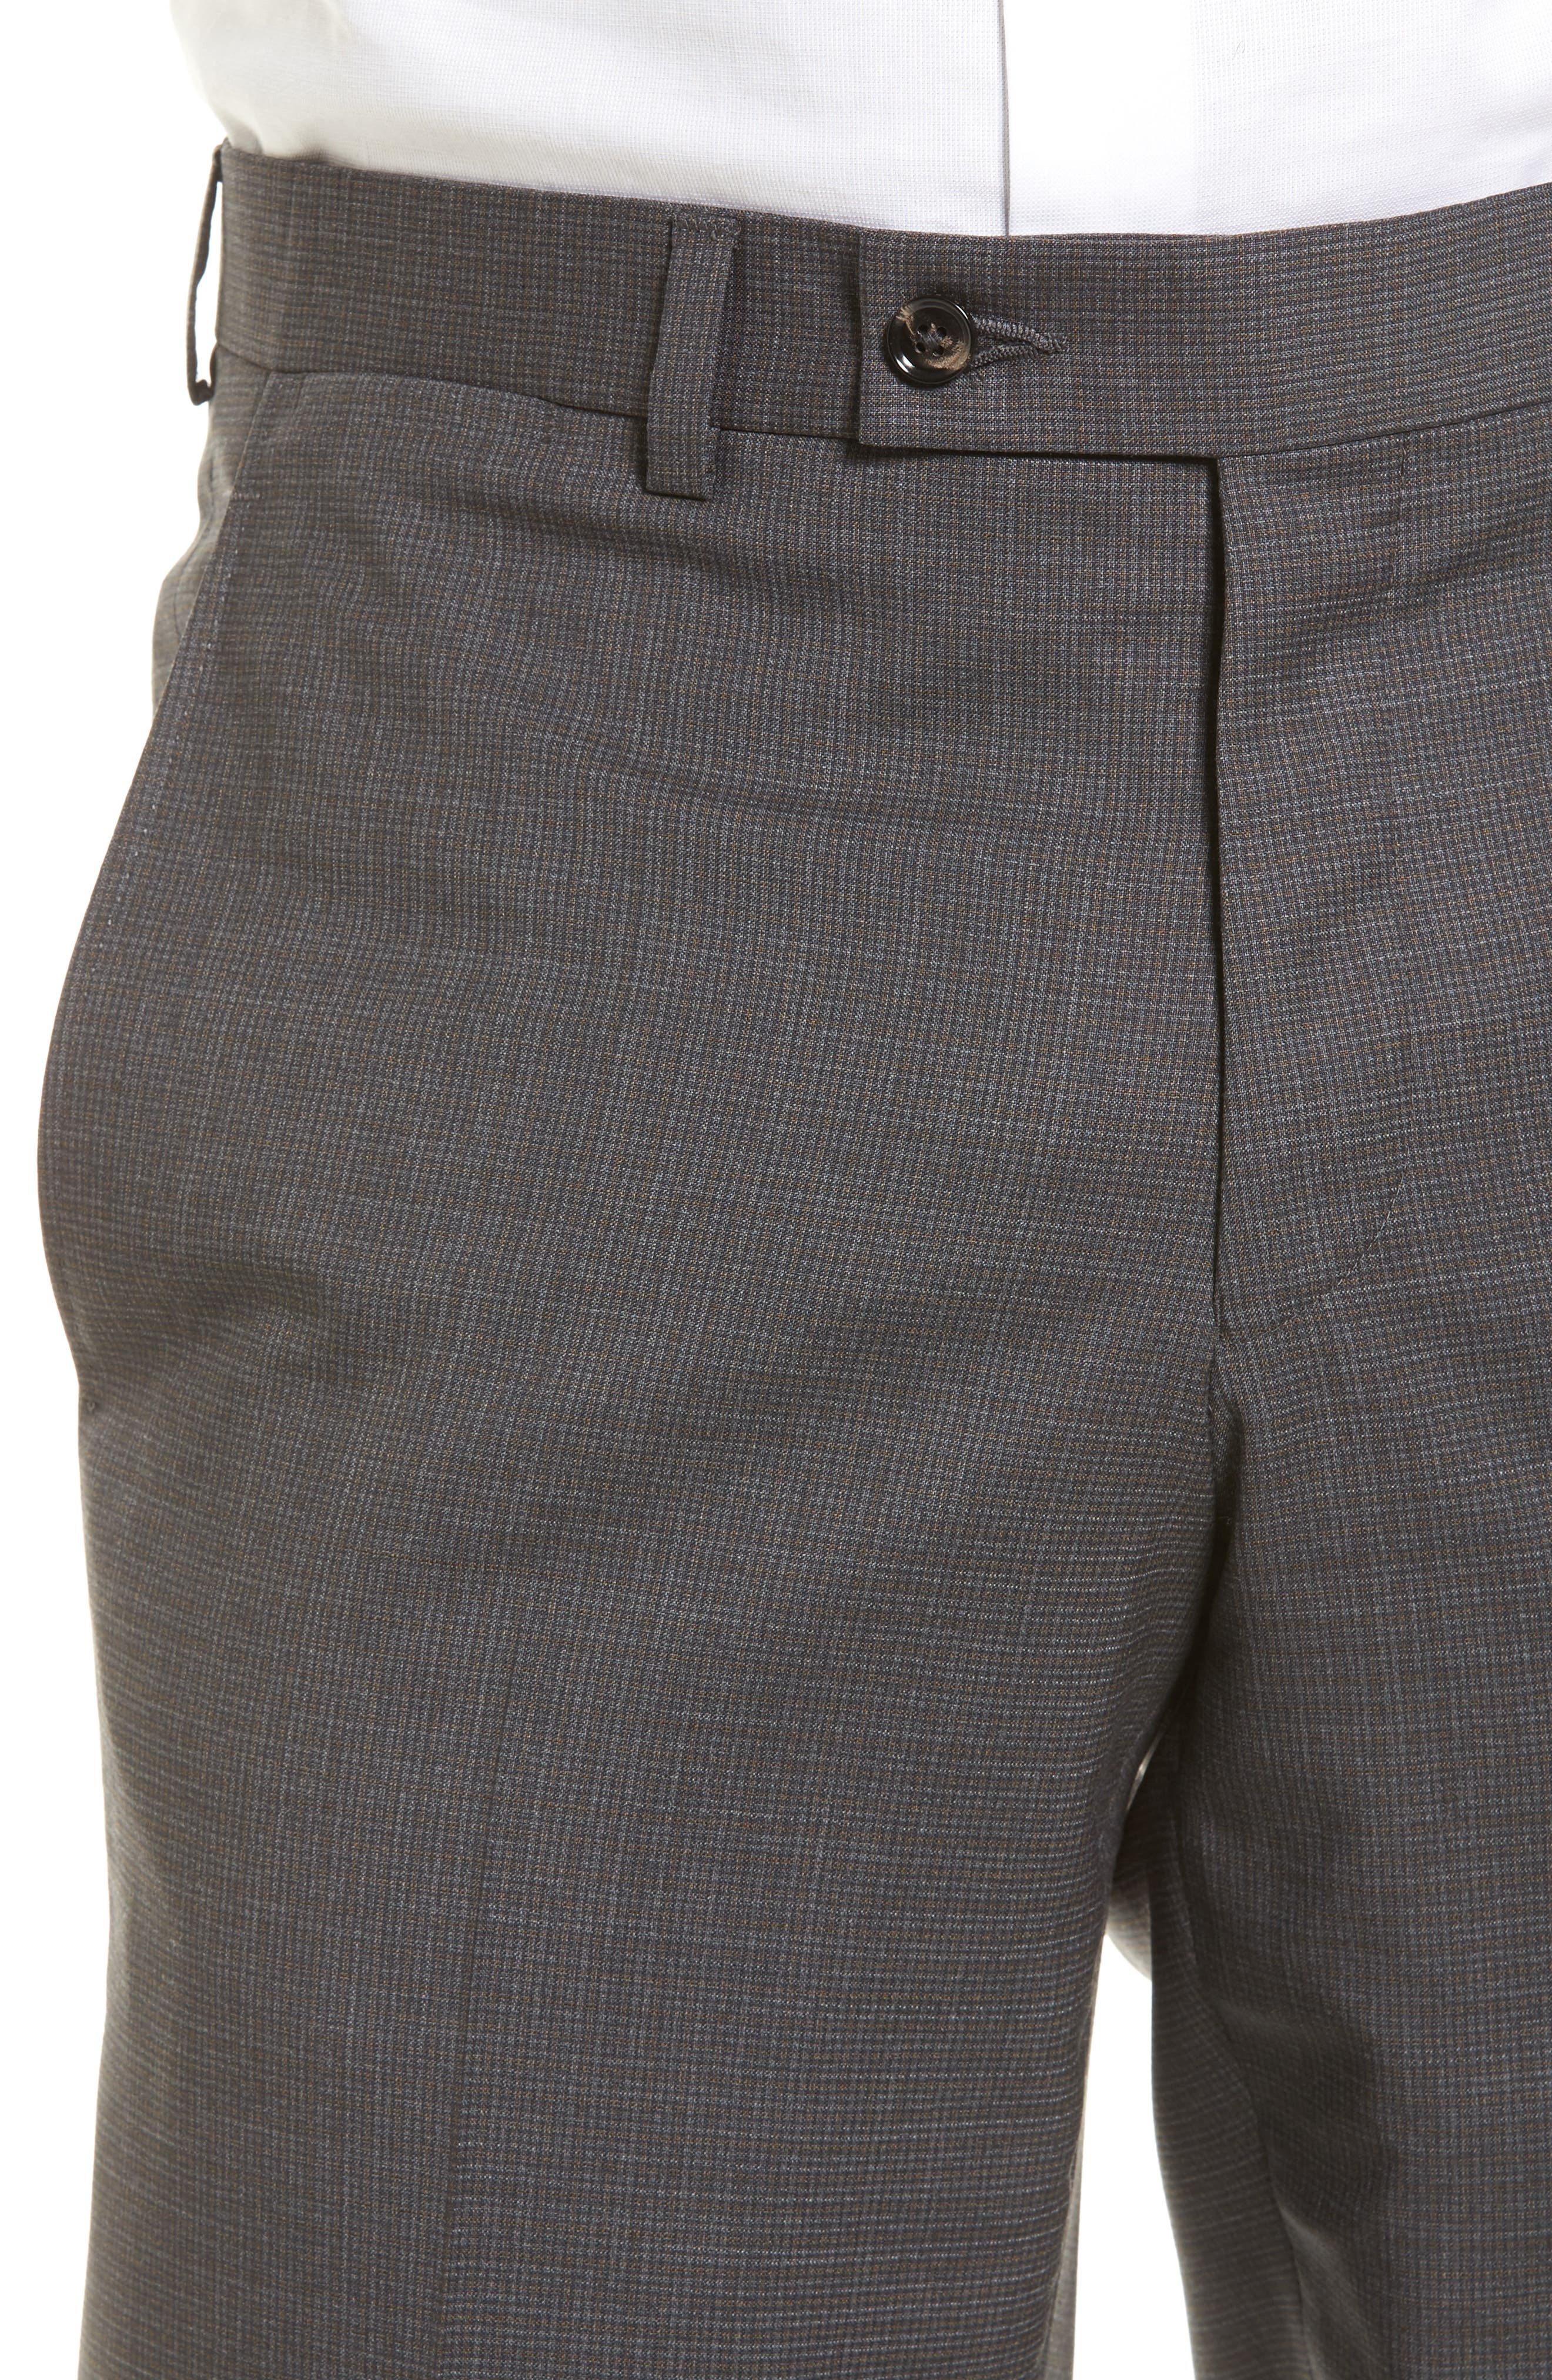 Jefferson Flat Front Wool Trousers,                             Alternate thumbnail 4, color,                             Grey